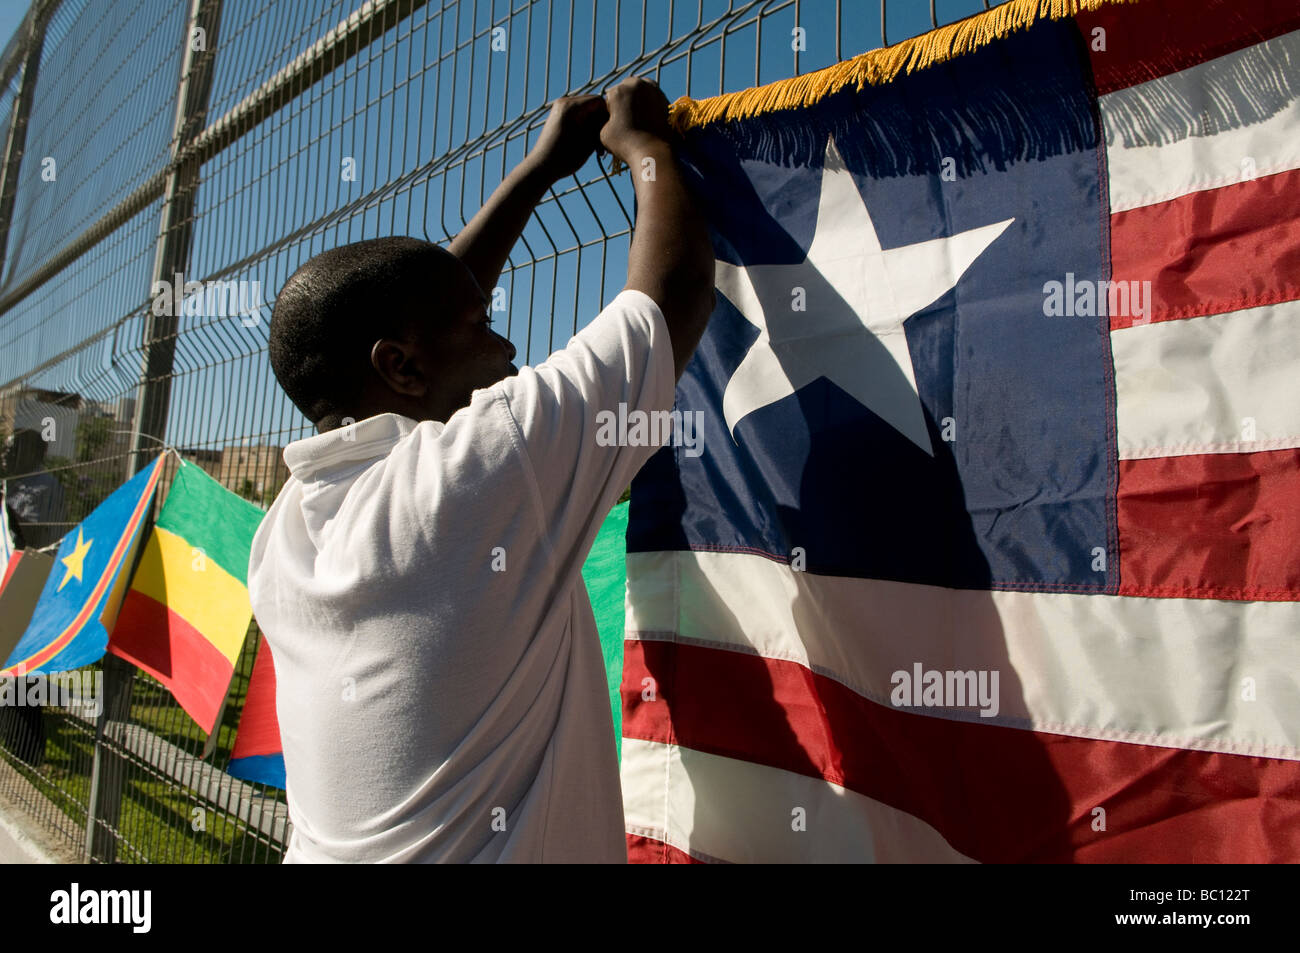 African migrant hanging African flags during UNHCR Refugee day event in Tel Aviv Israel - Stock Image